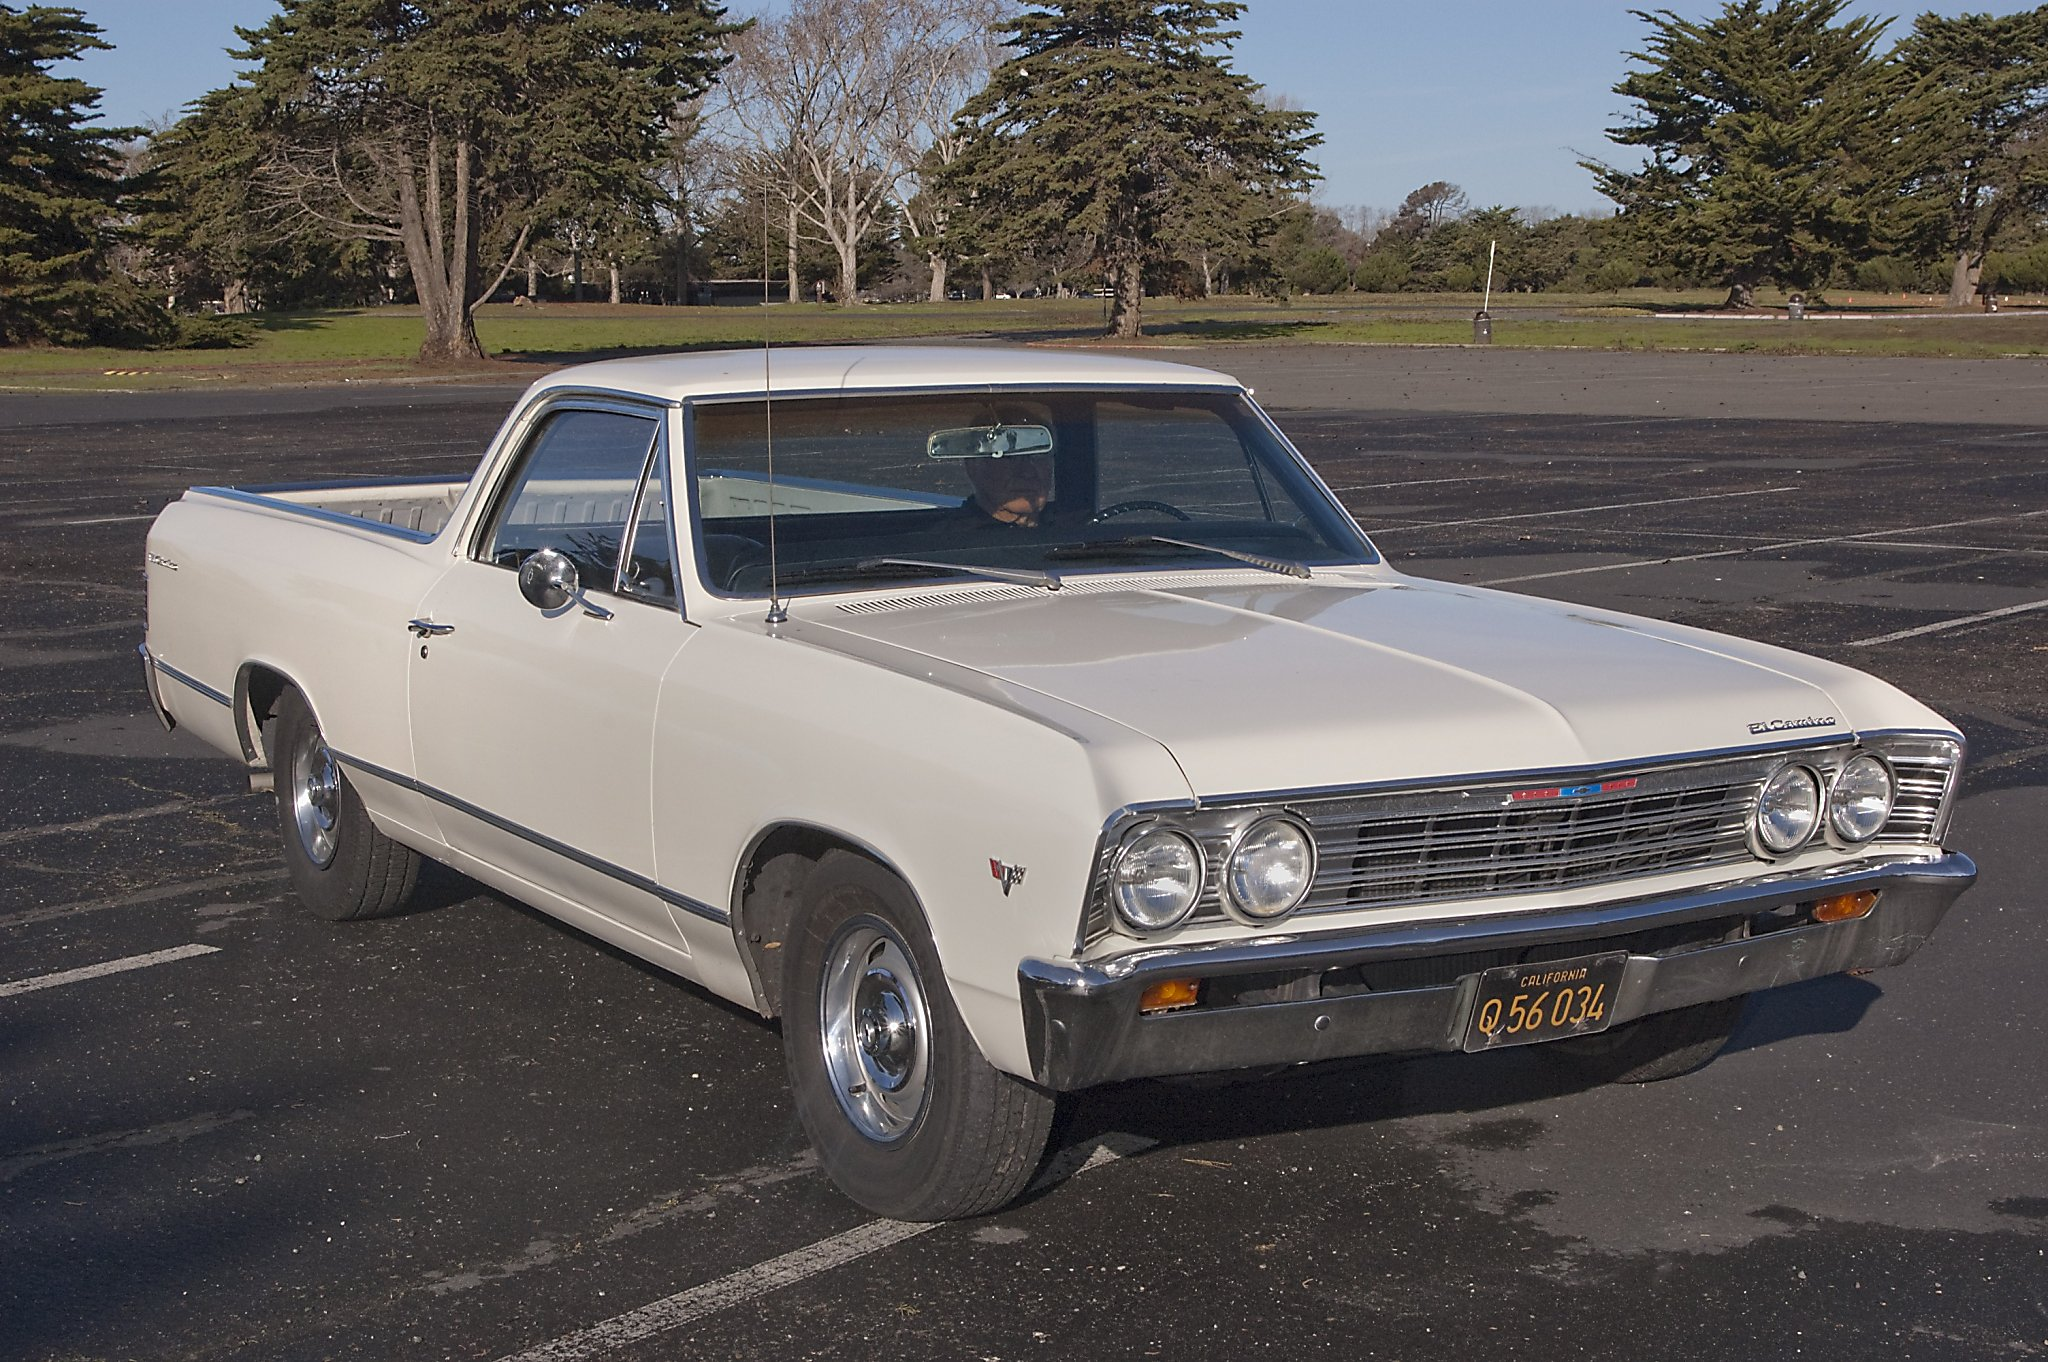 Taking the Chevelle for a daily drive SFGate